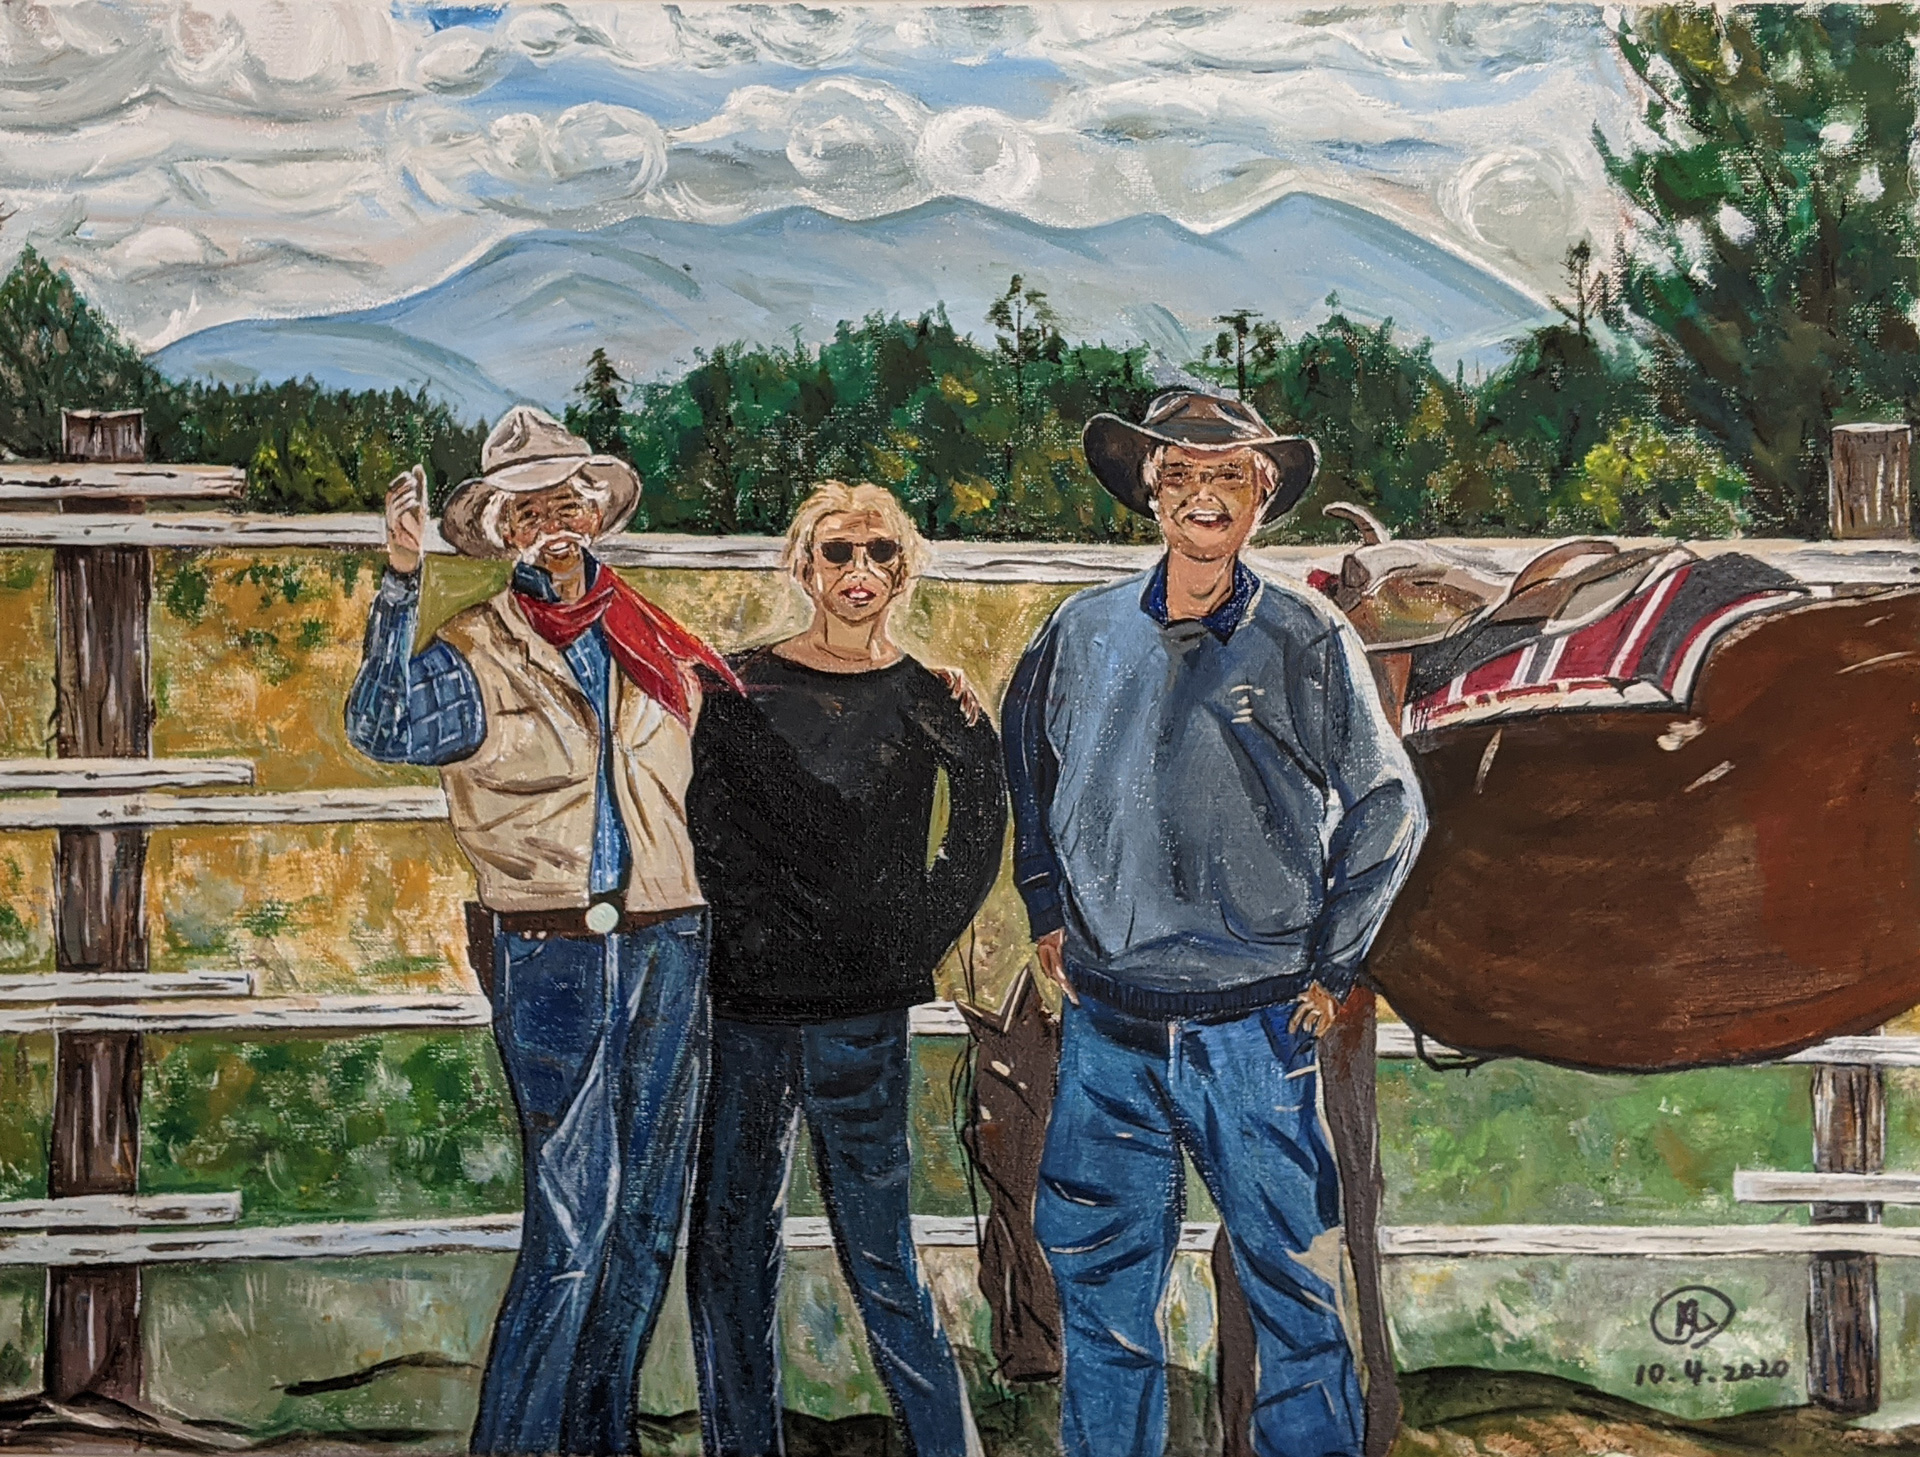 Friends in Telluride, Colorado Oil painting canvas size 17″ x 23.5″